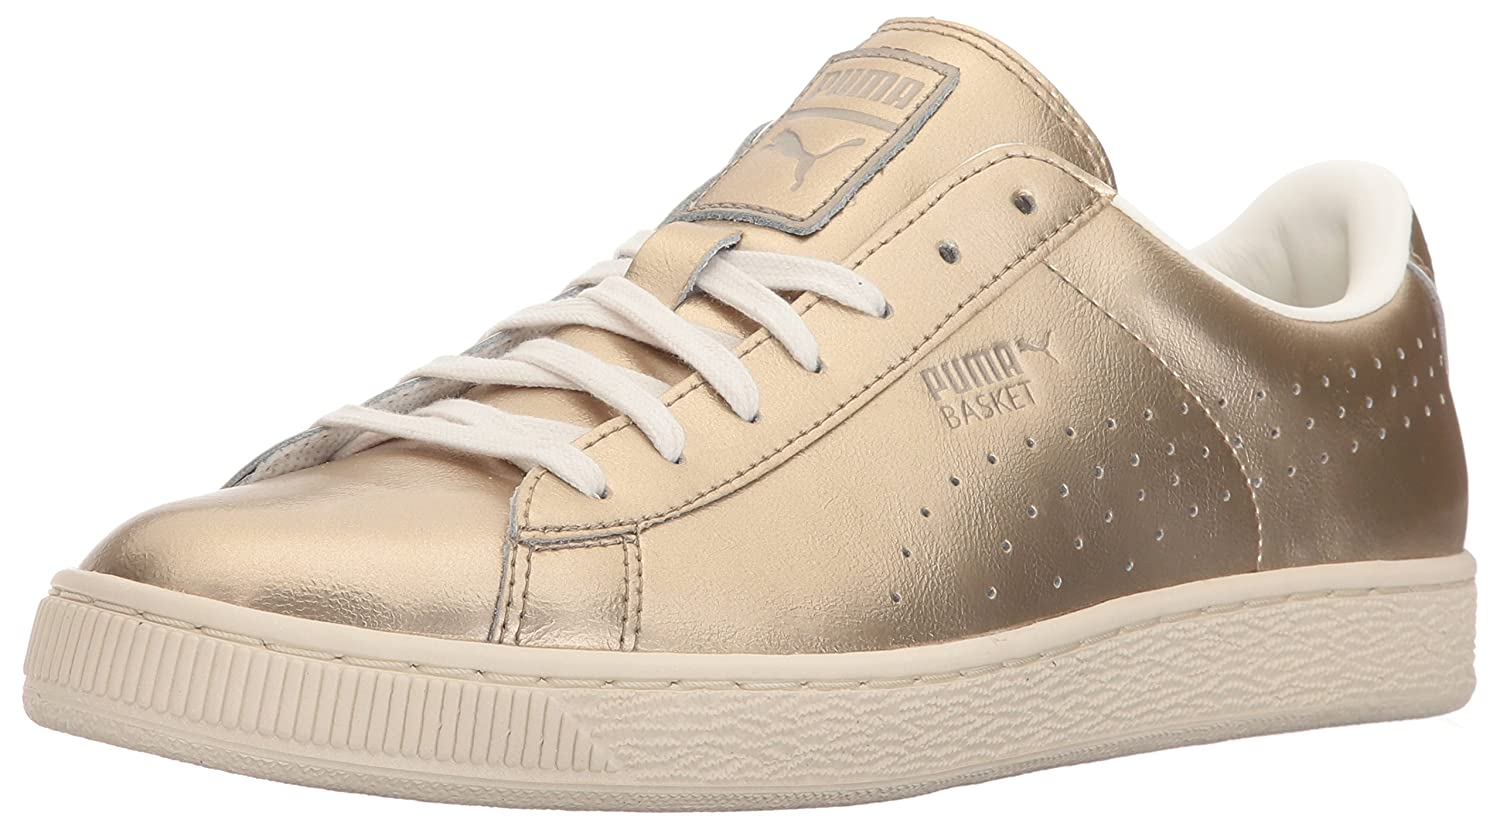 PUMA Women's Basket Classic Citi Metallic WN's Fashion Sneaker B01J152GVA 5.5 M US|Silver Gold-whisper